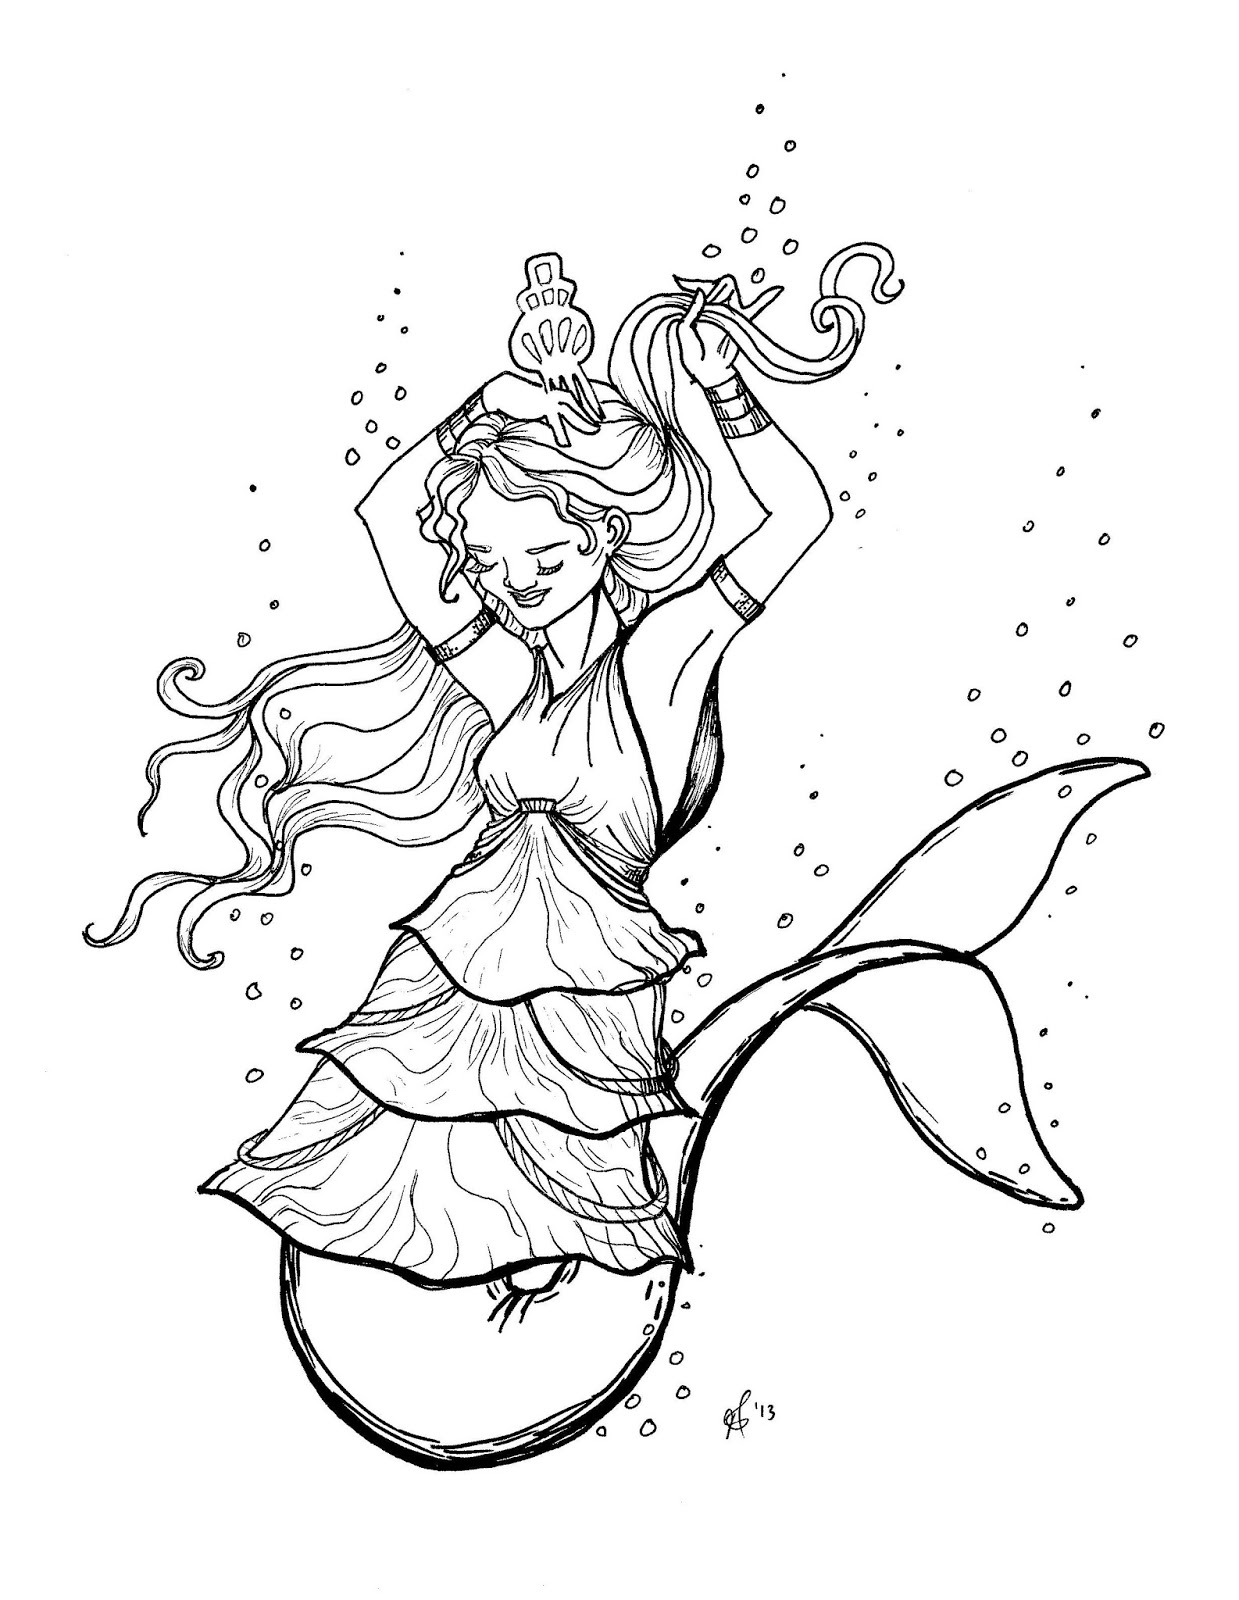 1239x1600 Mermaid Tail Coloring Pages 28693,